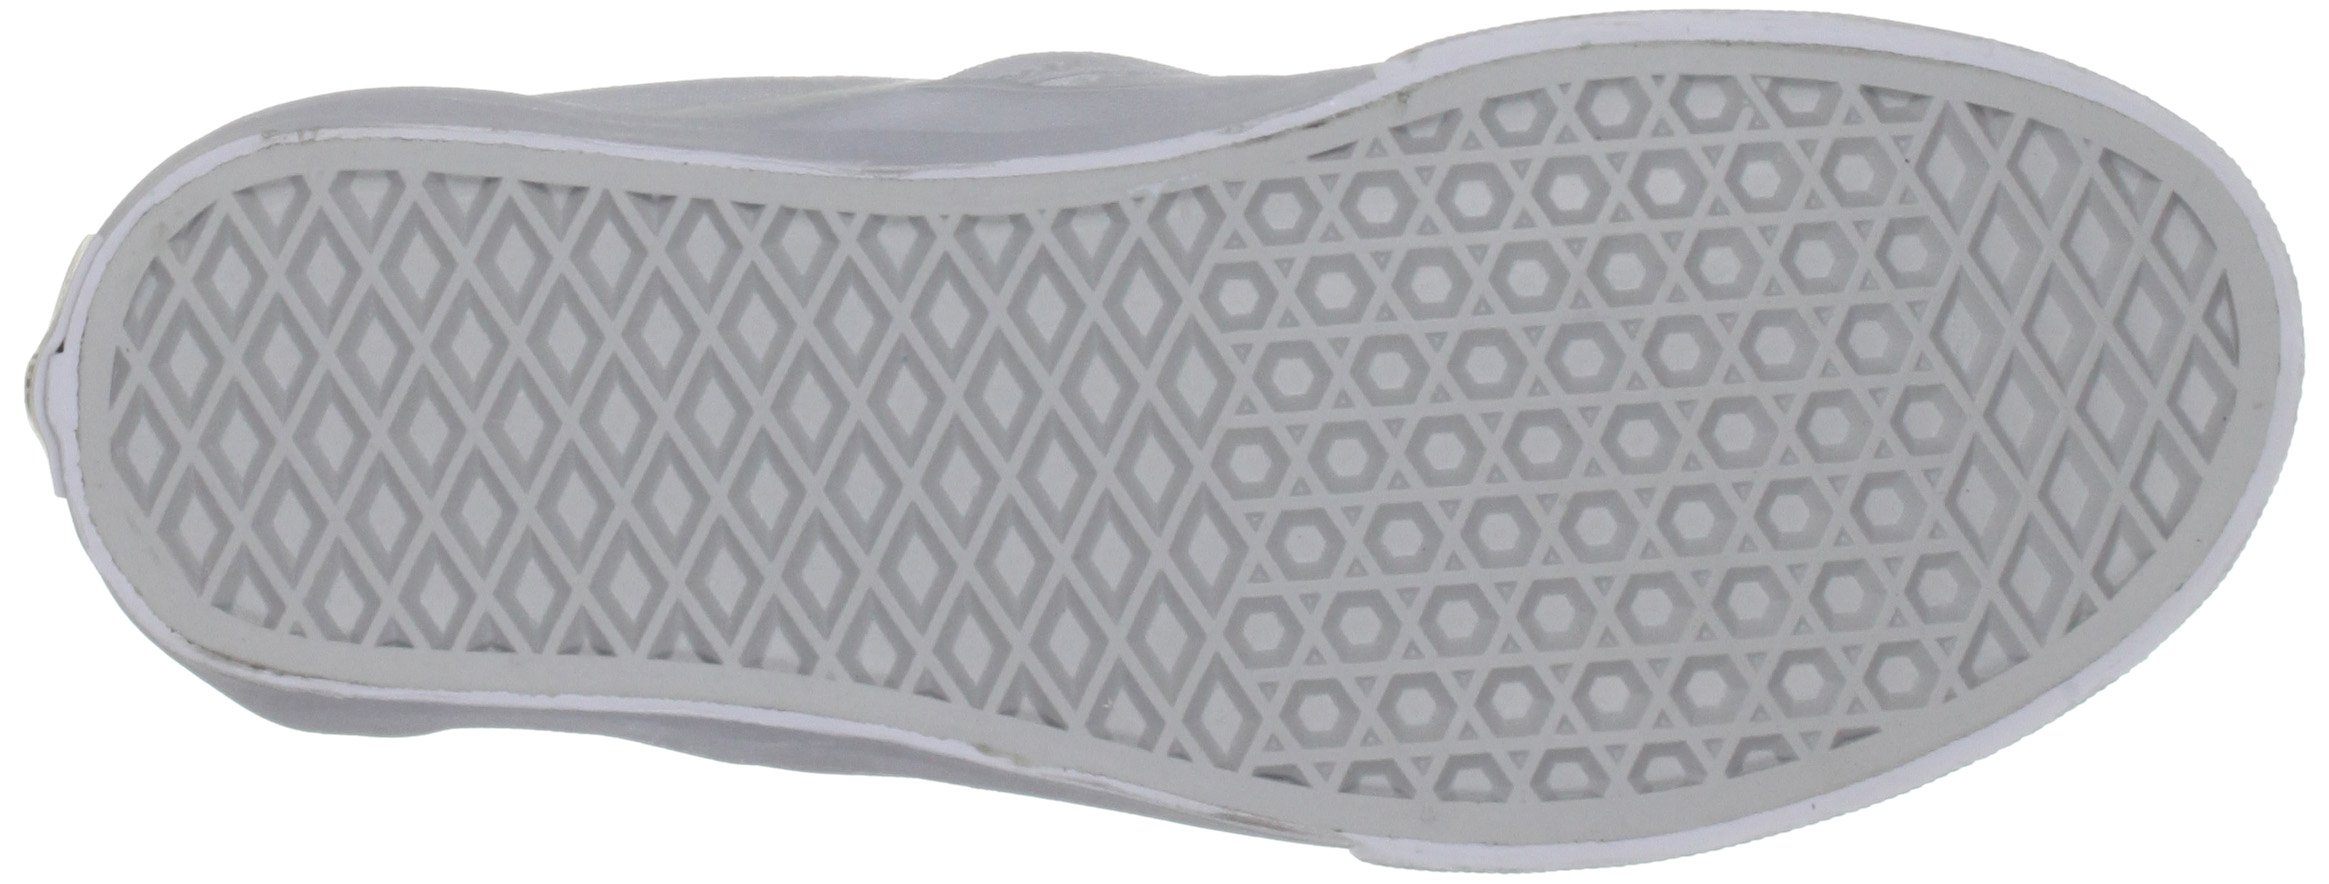 Vans Unisex Classic Slip-On(tm) Core Classics True White (Canvas) Sneaker Men's 6.5, Women's 8 Medium by Vans (Image #3)